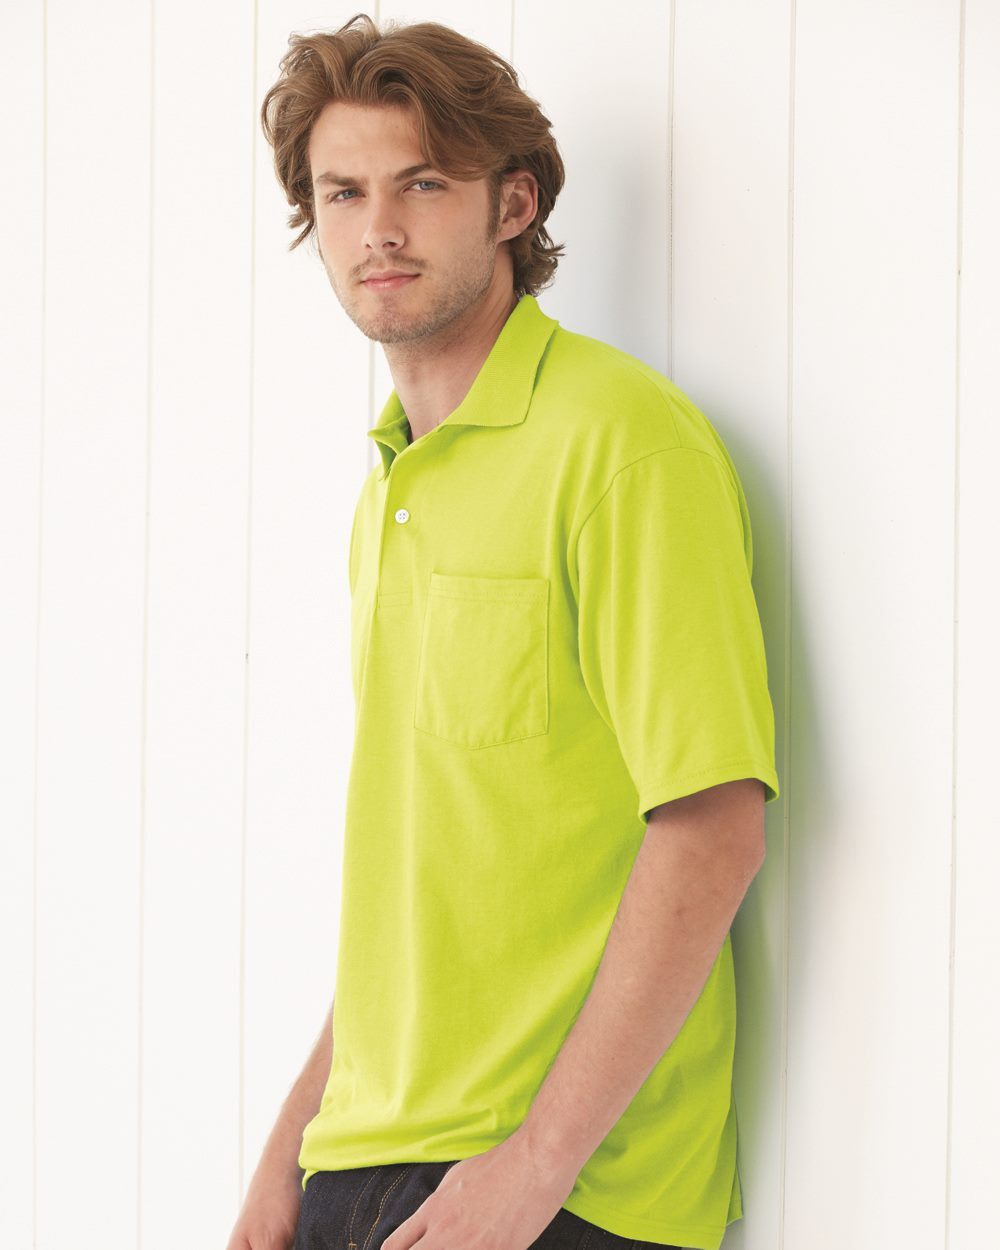 1efd7e4b242 JERZEES - SpotShield 50/50 Sport Shirt with a Pocket - 436MPR. Loading zoom